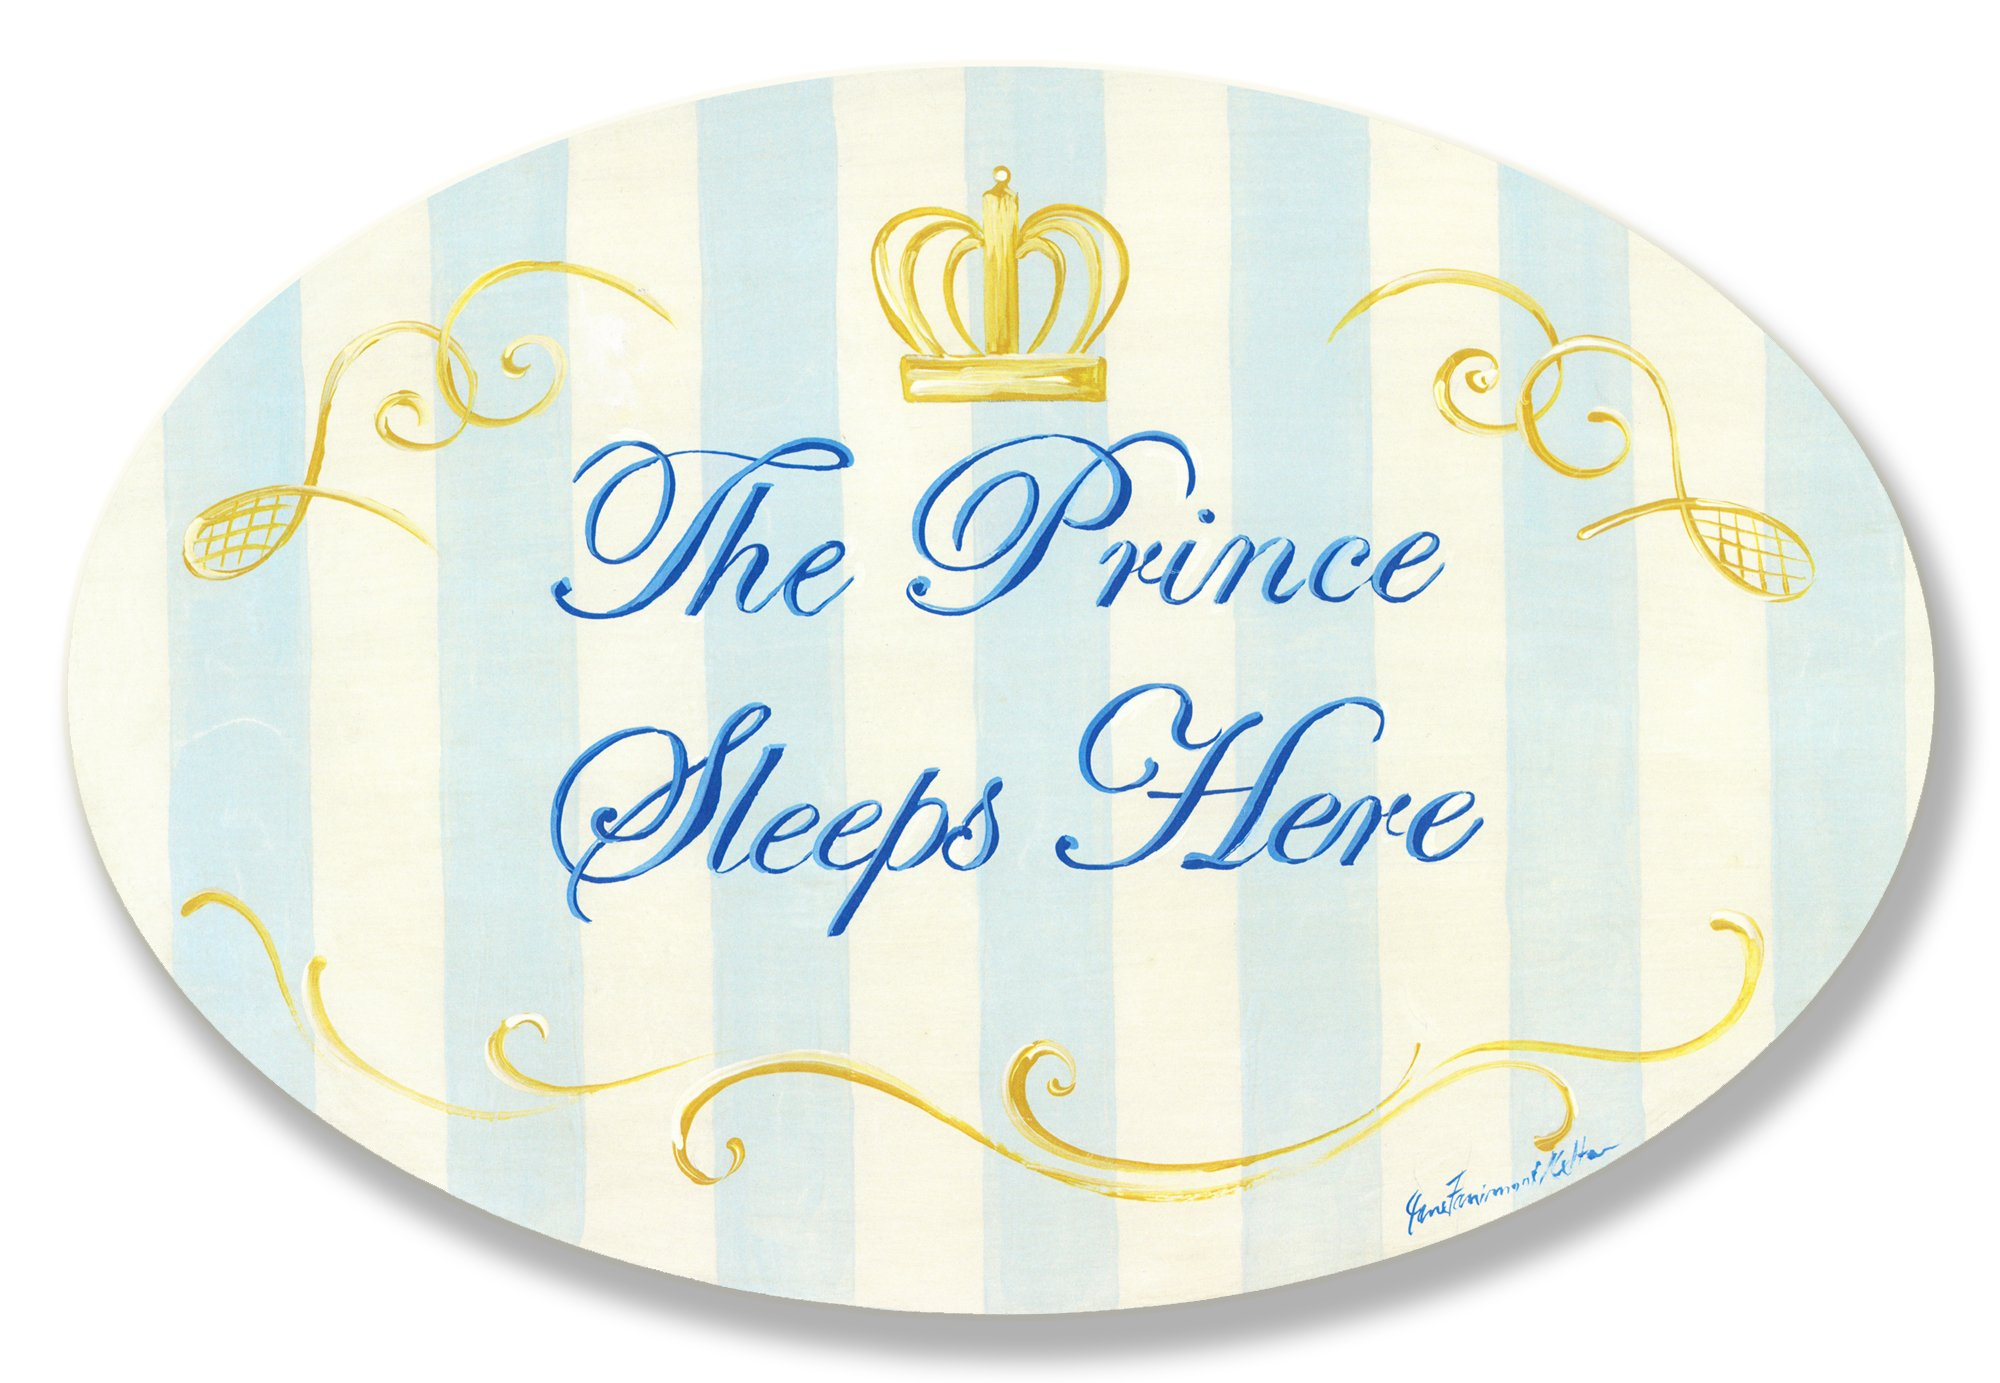 The Kids Room by Stupell The Prince Sleeps Here Blue and White Stripes with Crown Oval Wall Plaque, 10 x 0.5 x 15, Proudly Made in USA by The Kids Room by Stupell